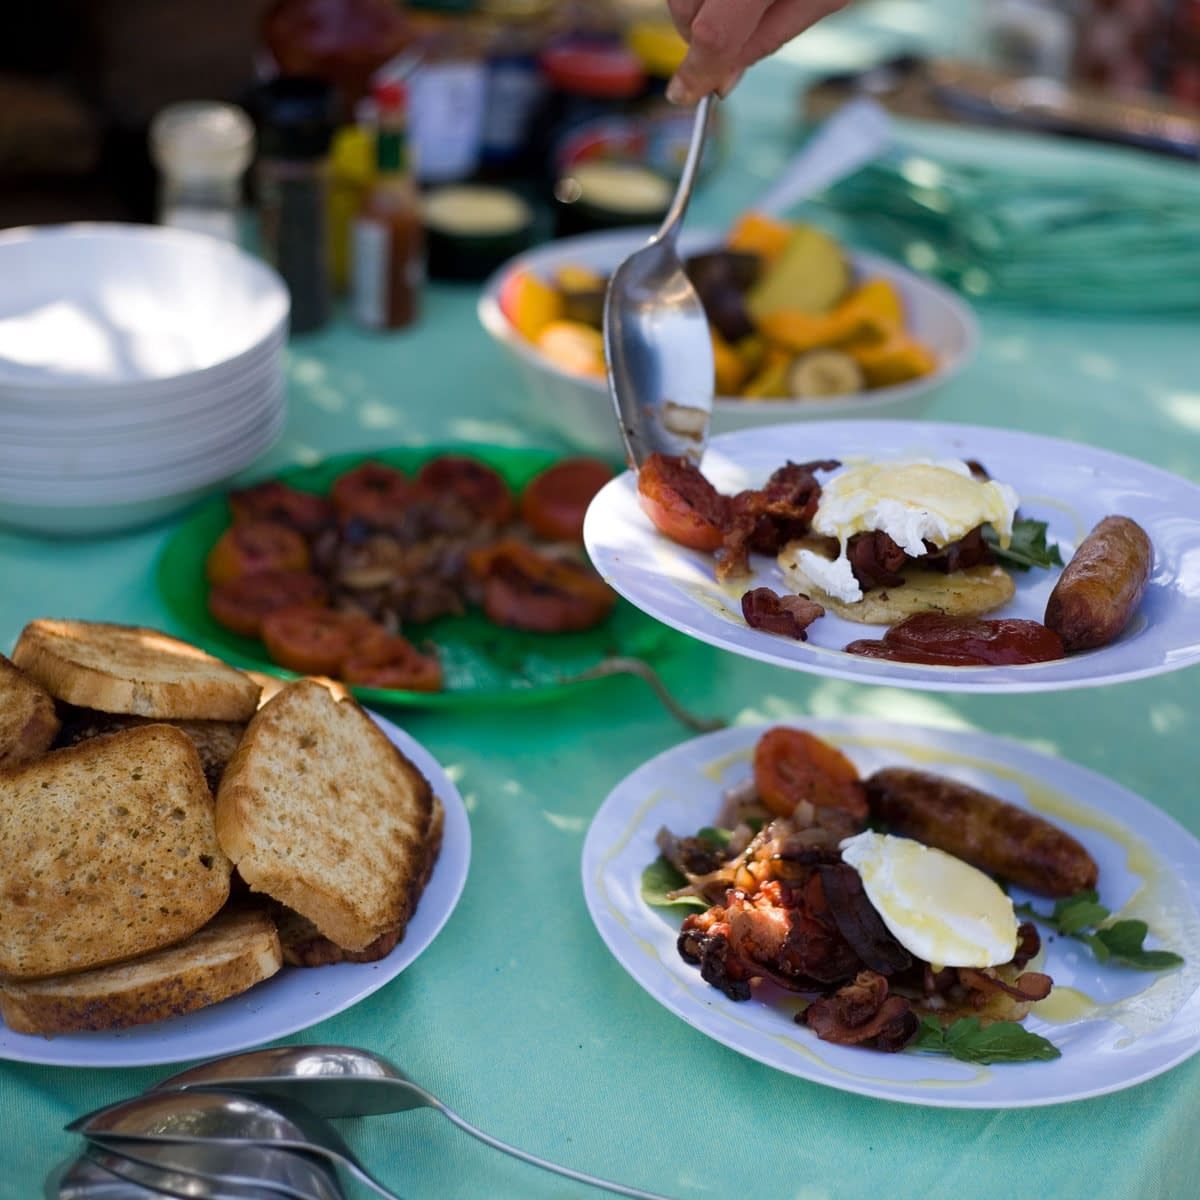 Variety of breakfast foods including toast and eggs